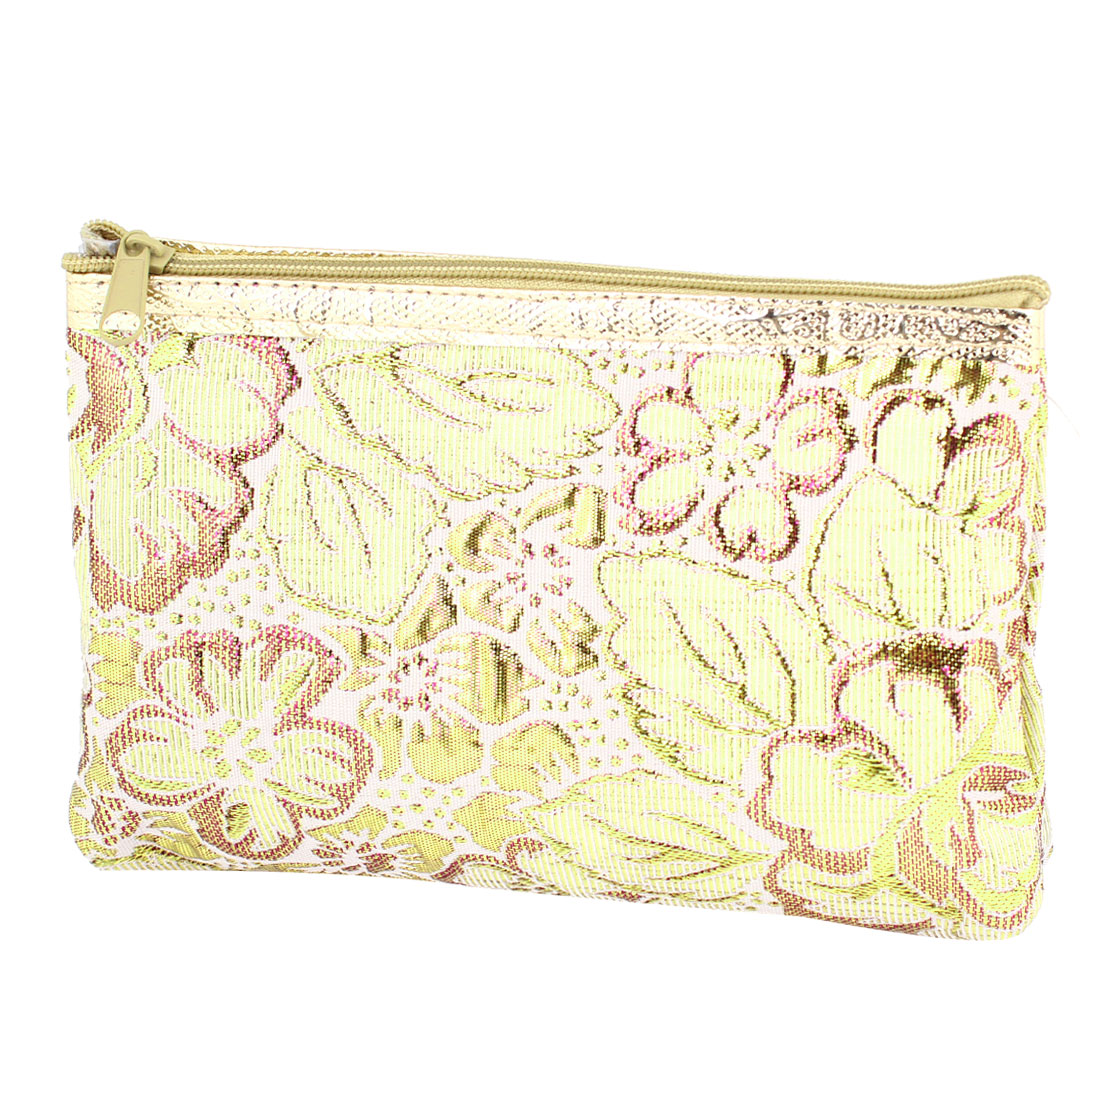 Glittery Floral Faux Leather Lining Zip Up Cosmetic Bag Holder Gold Tone Fuchsia